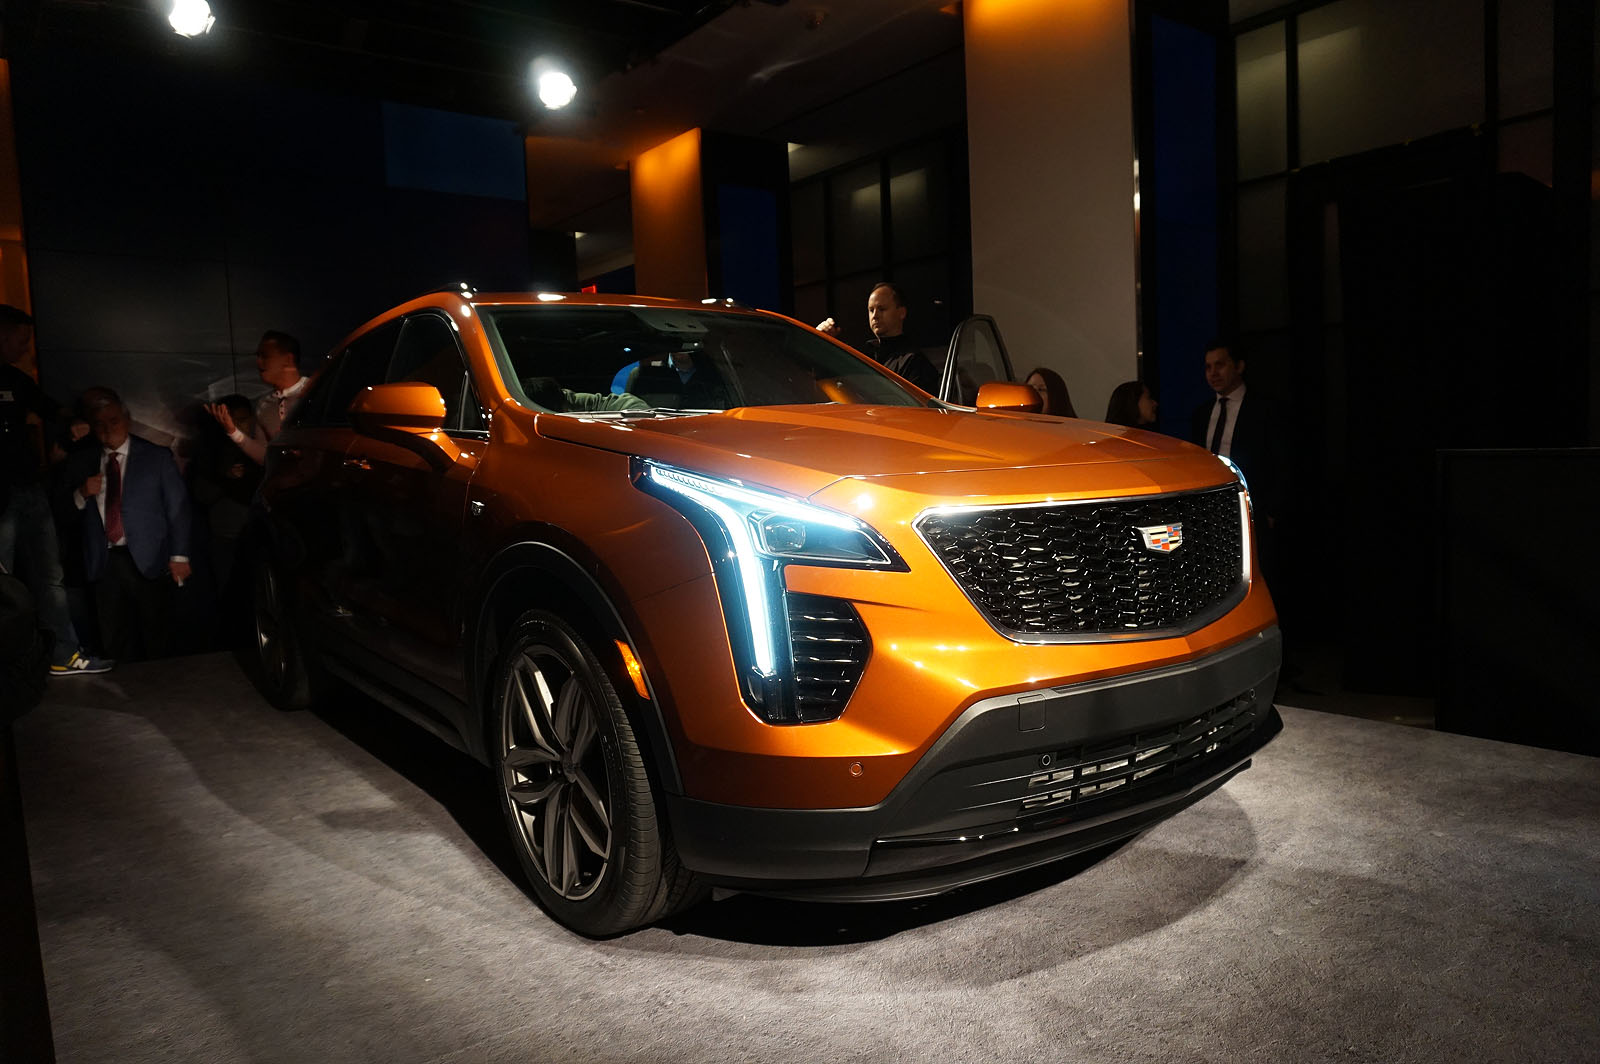 2018 Volkswagen Suv >> 2019 Cadillac XT4 Debuts: 4 Things You Should Know » AutoGuide.com News